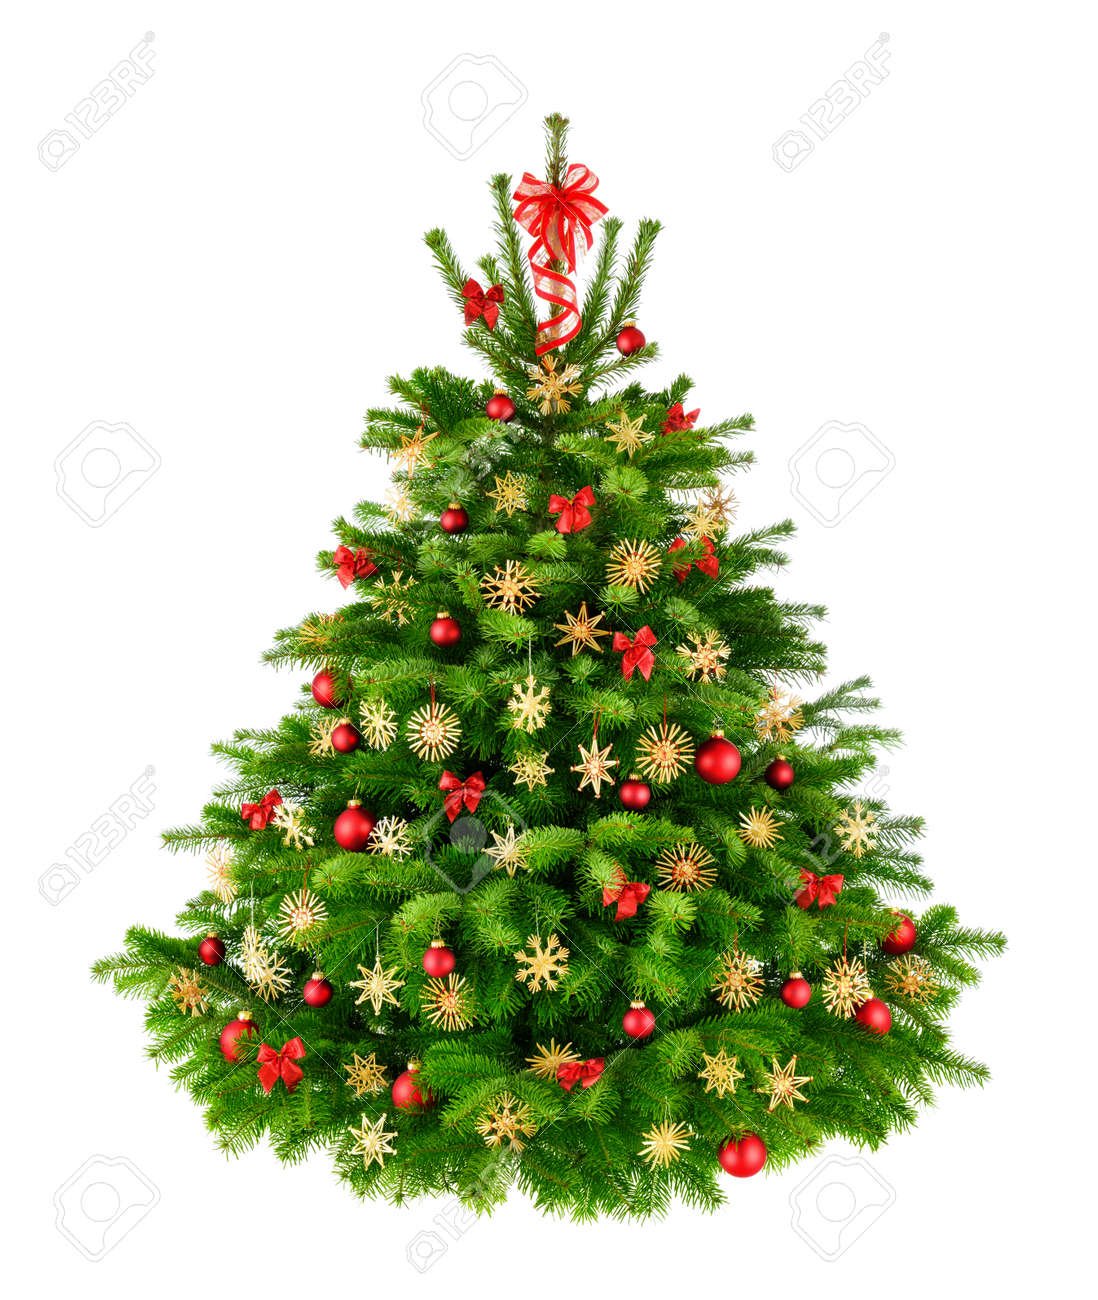 Natural Christmas Tree.Rustic Natural Christmas Tree With Red Baubles Bows And Straw